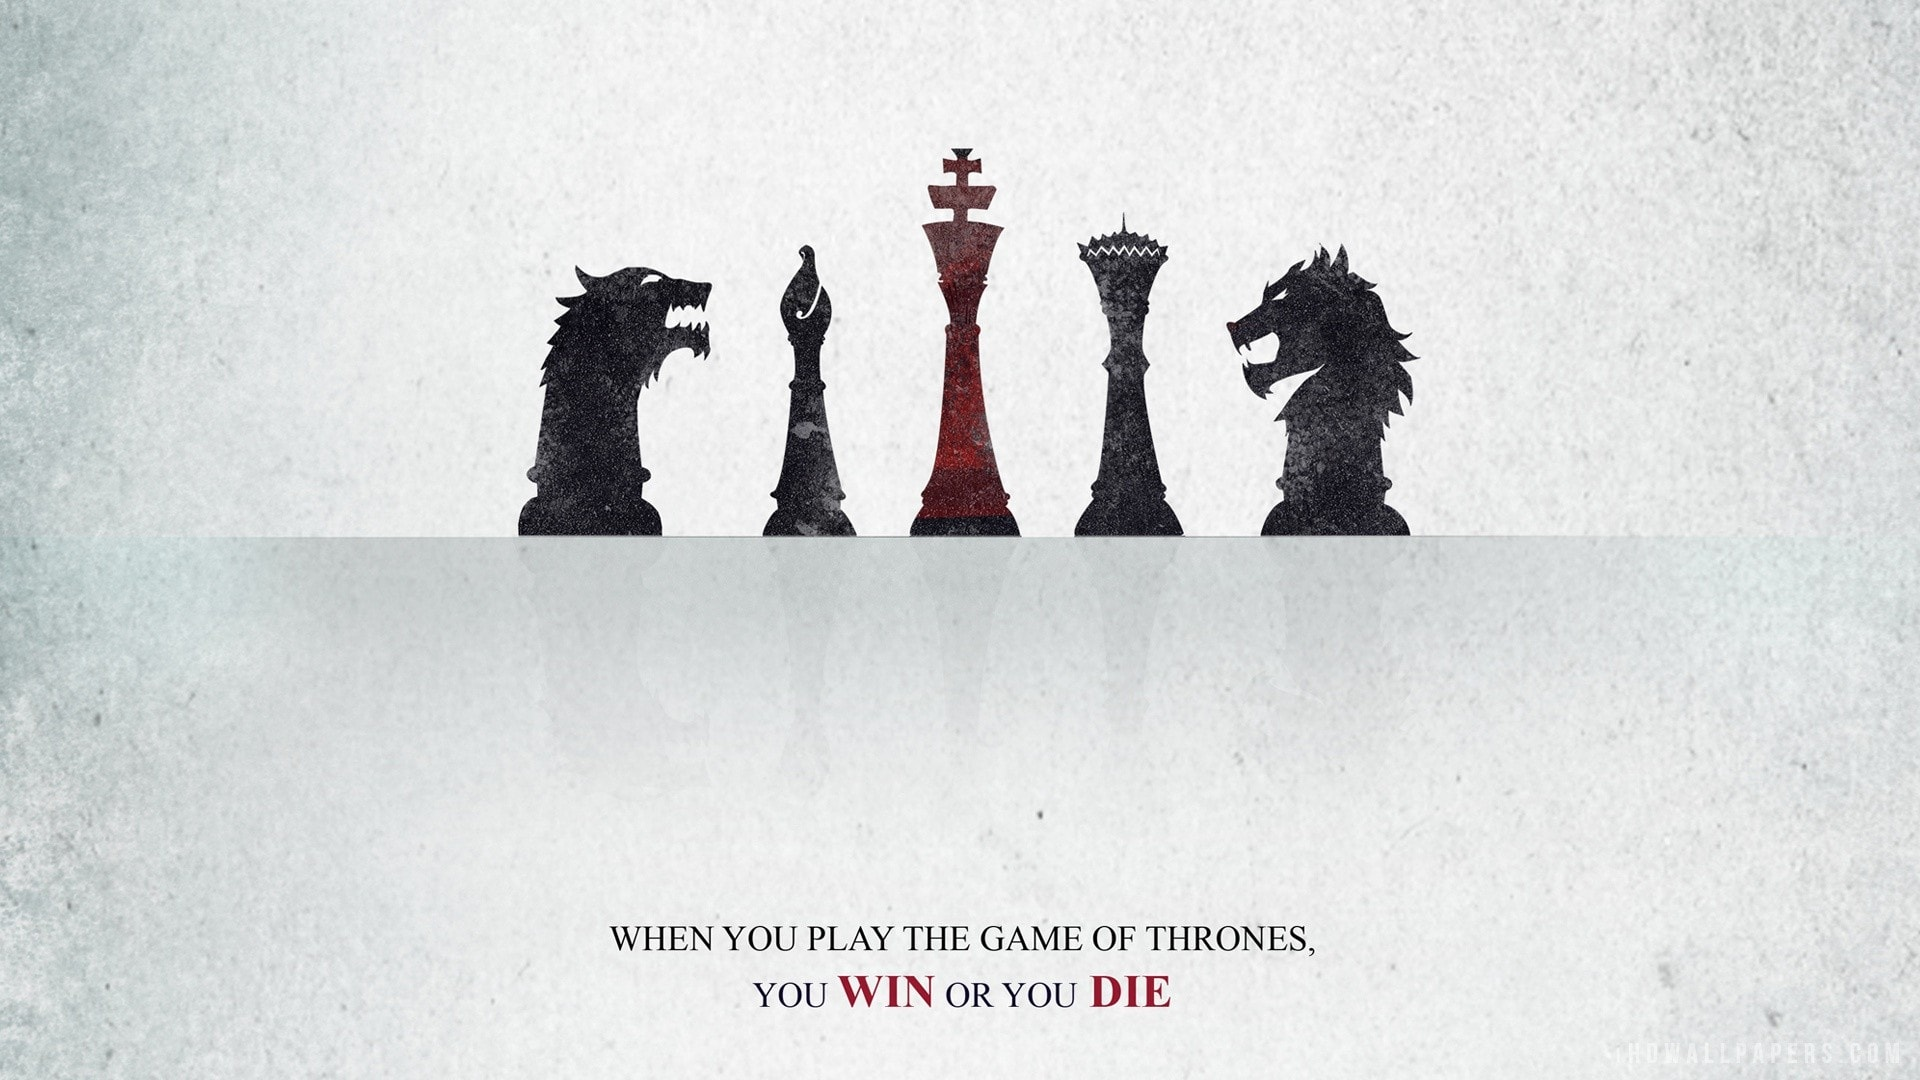 game of thrones hot game of thrones desktop wallpapers